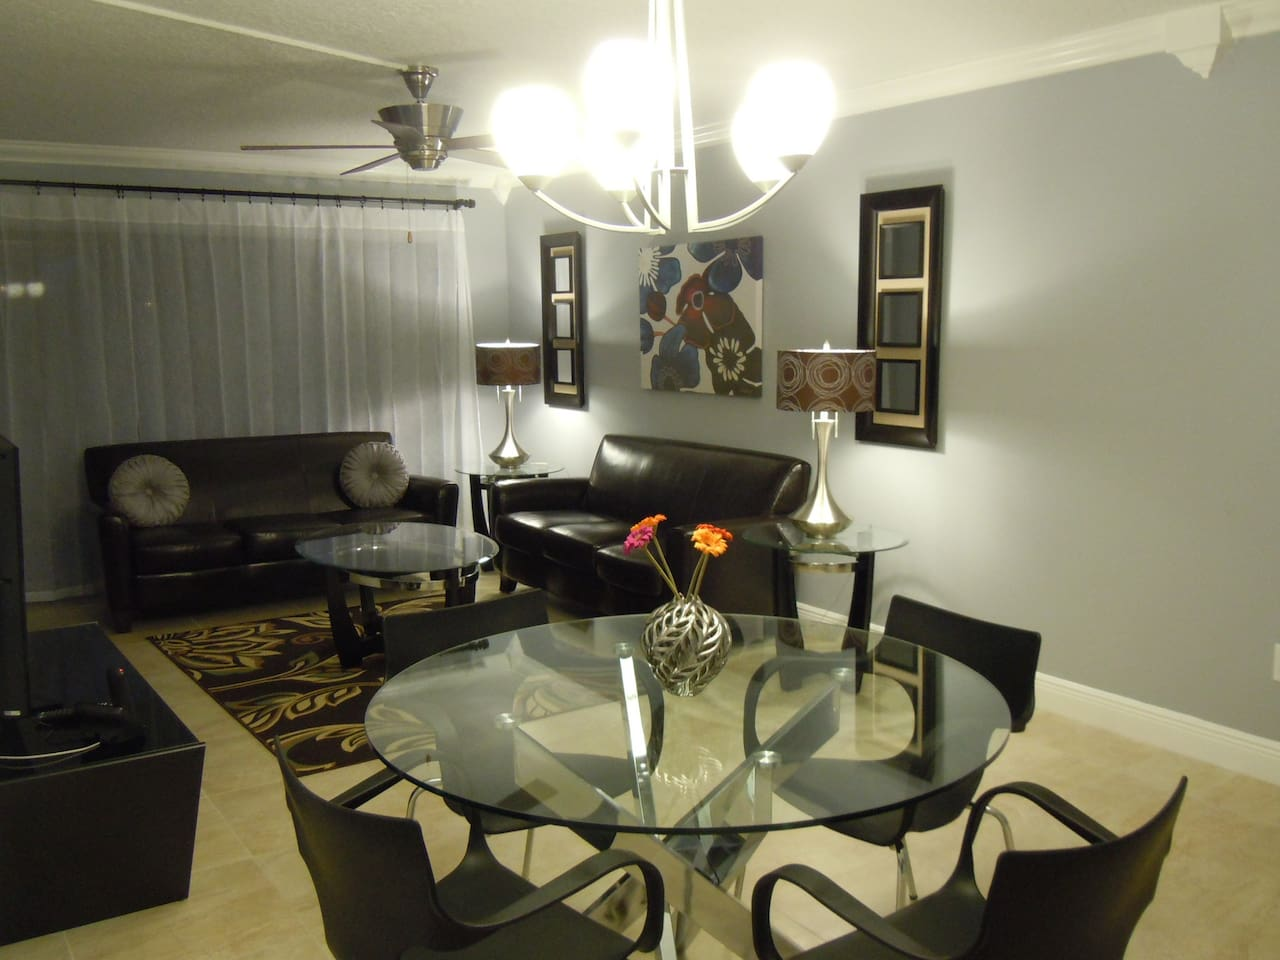 Living-Dining room, view from kitchen